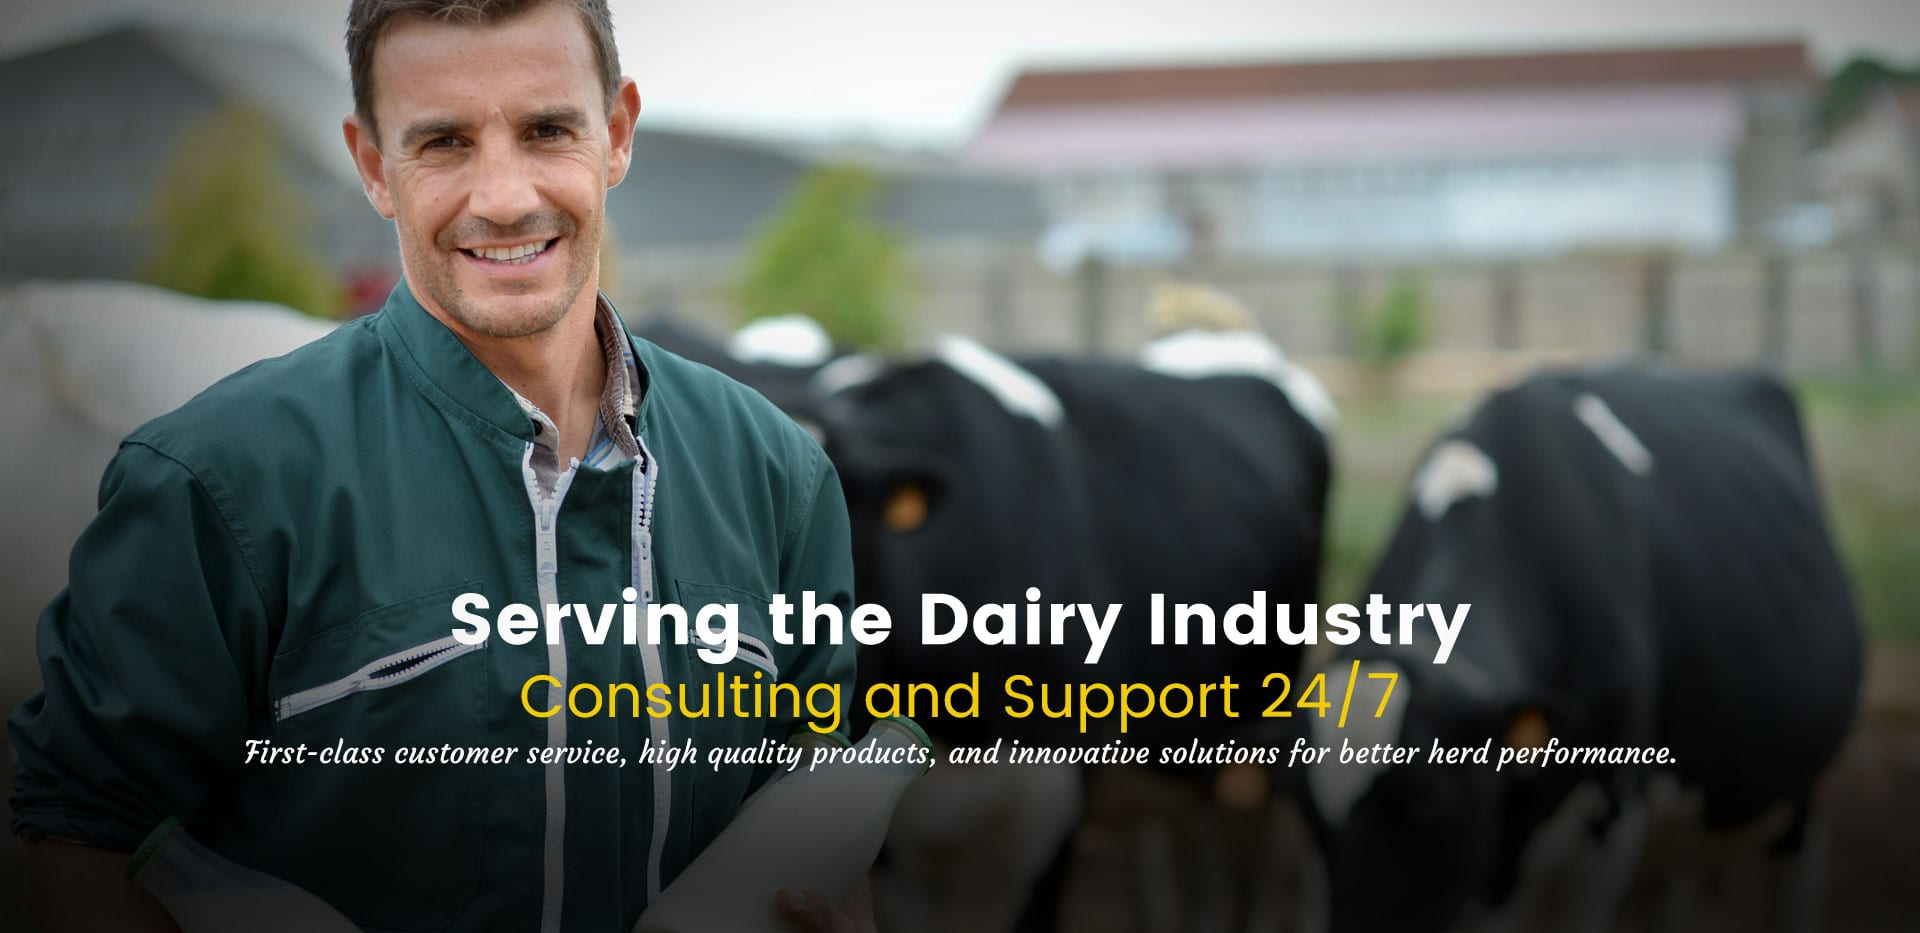 Serving the Dairy Industry